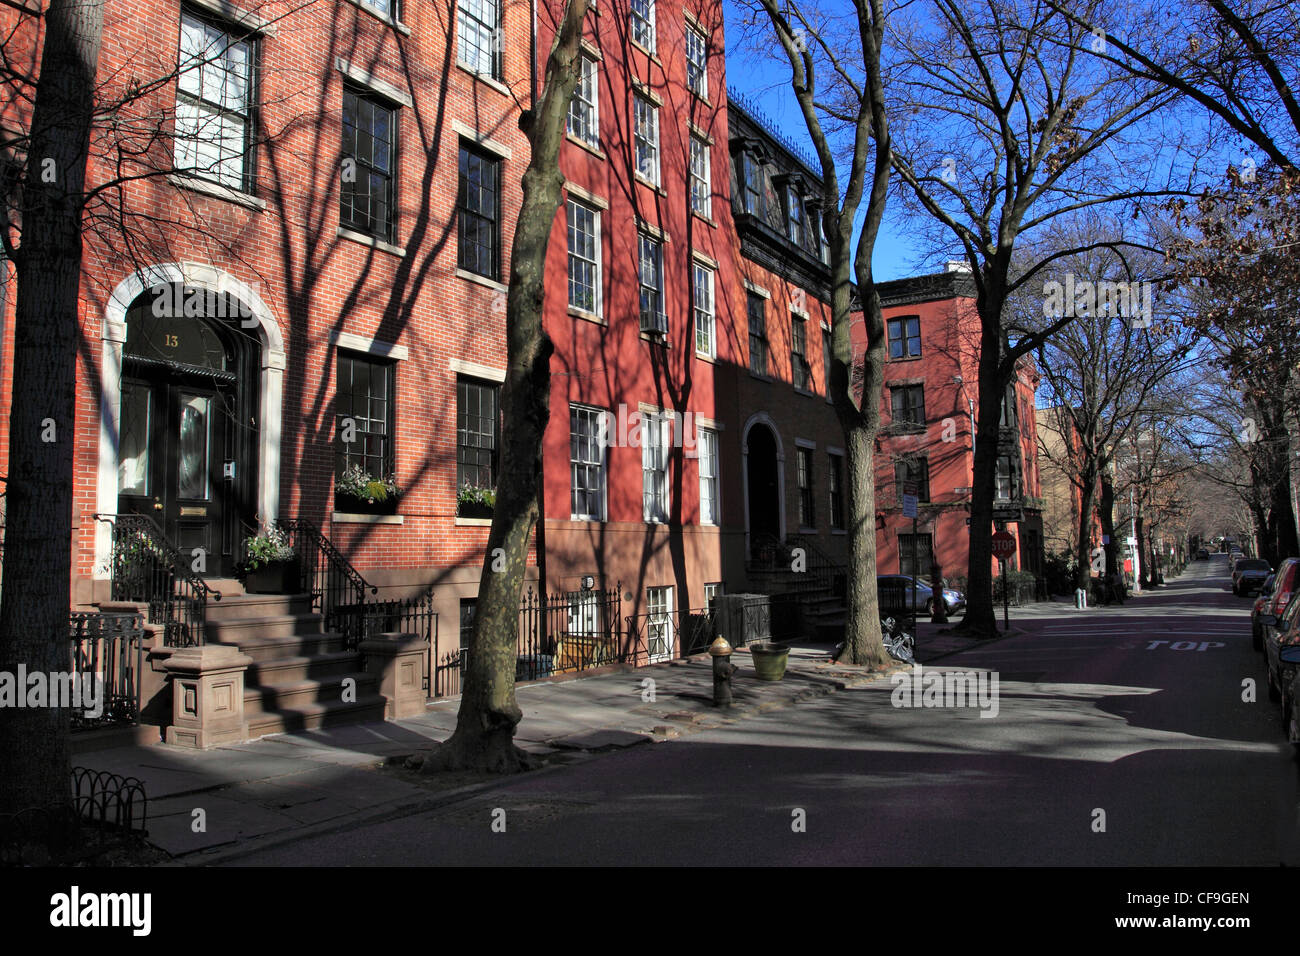 old new york brownstone stockfotos old new york brownstone bilder alamy. Black Bedroom Furniture Sets. Home Design Ideas